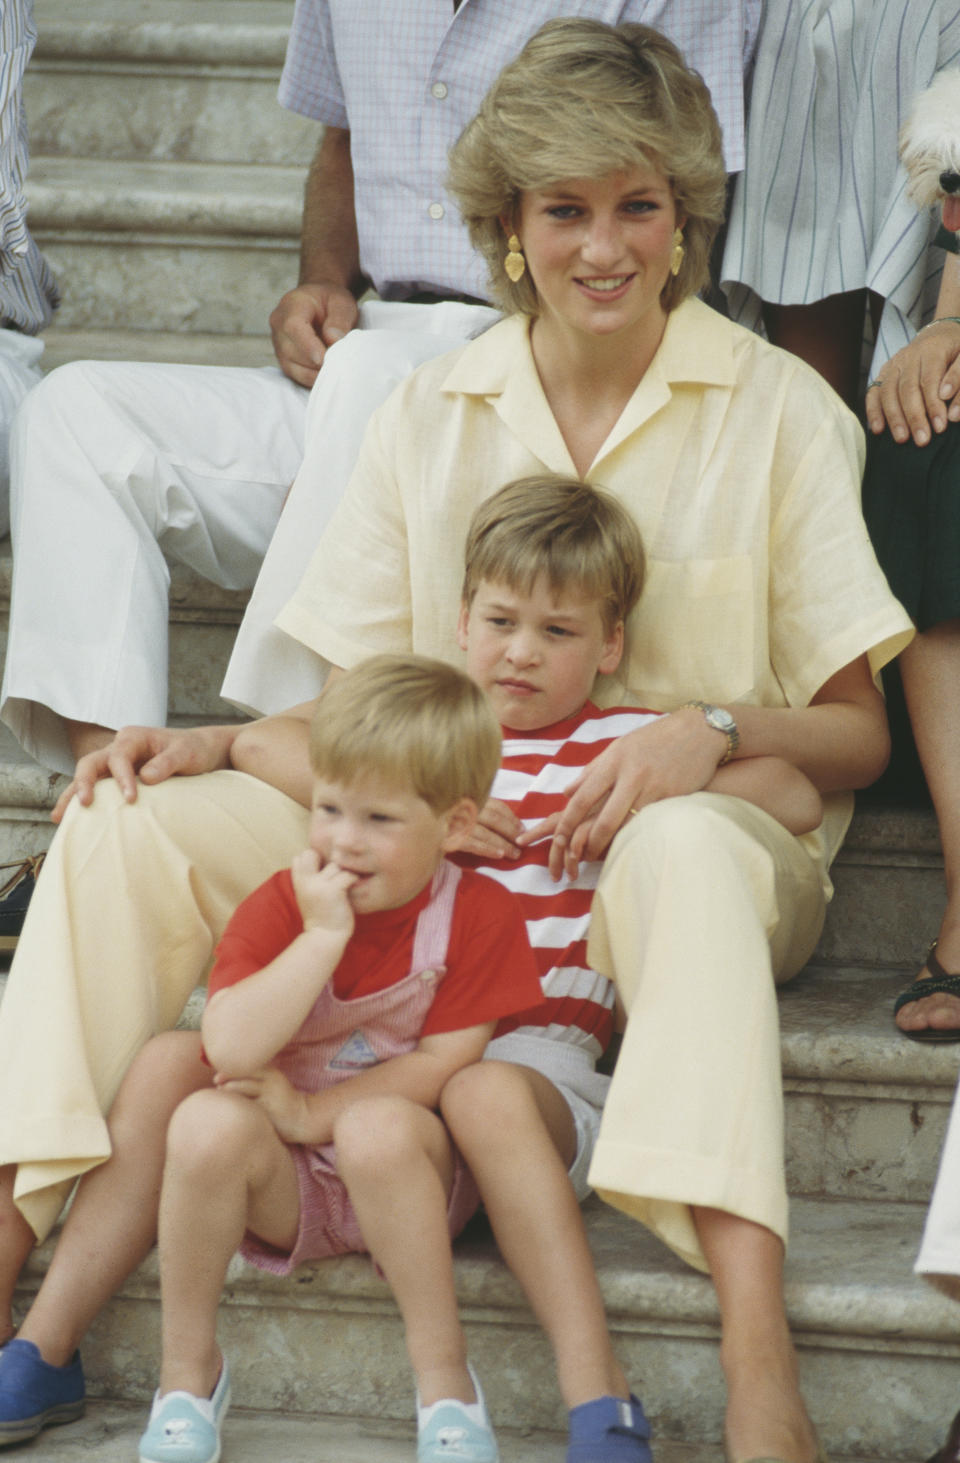 <p>William and Harry sitting with their mother Diana during a holiday with the Spanish royal family at the Marivent Palace in Palma de Mallorca, Spain, in August 1987. (Terry Fincher/Princess Diana Archive/Getty Images)</p>